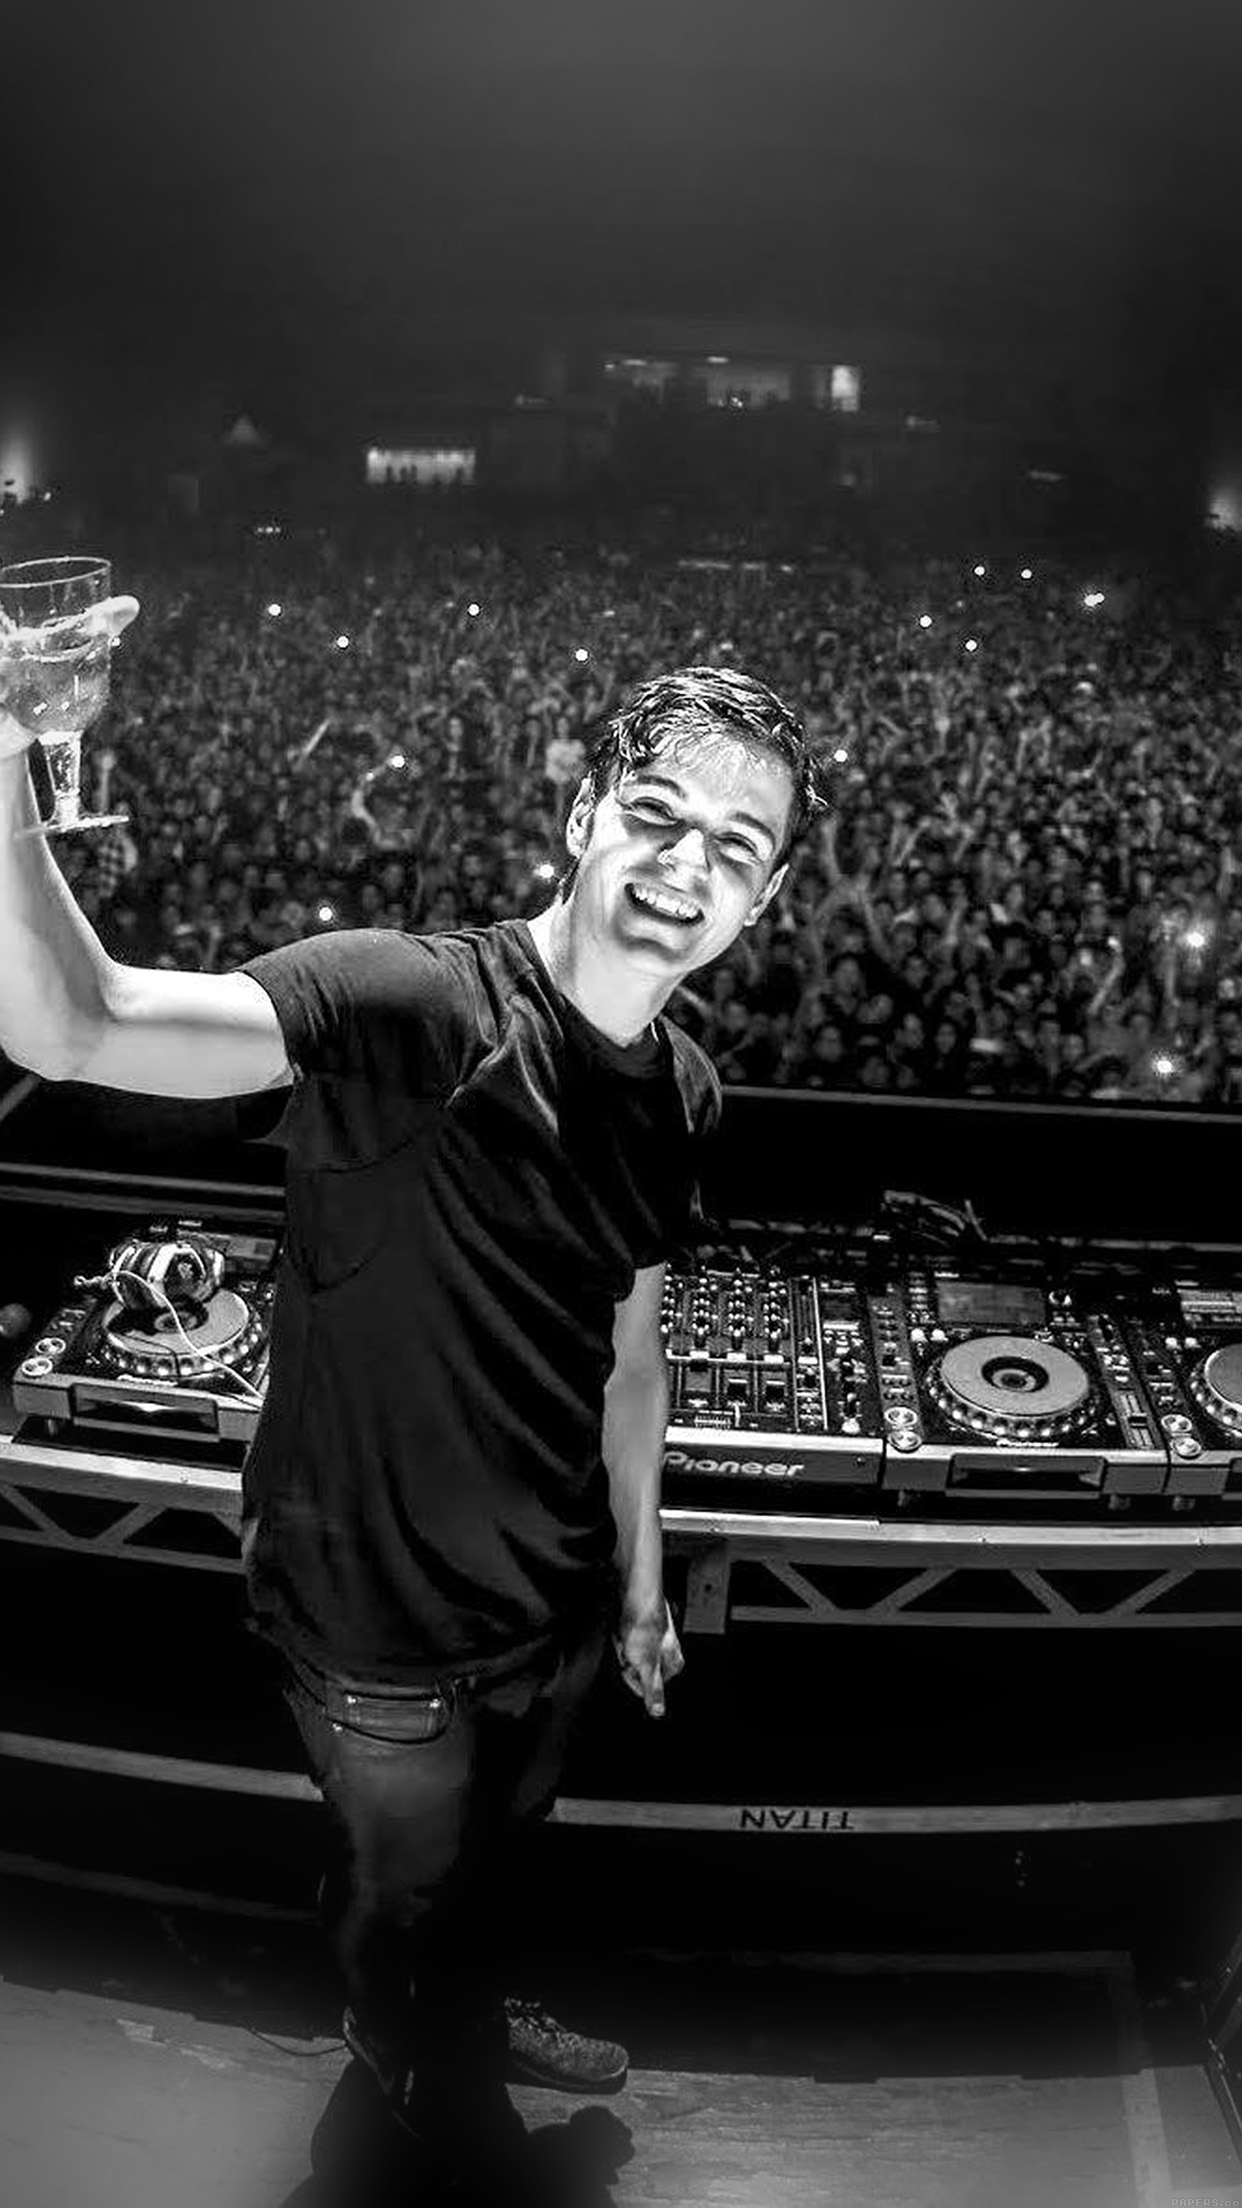 Martin Garrix Dj Celebrity Music Android wallpaper